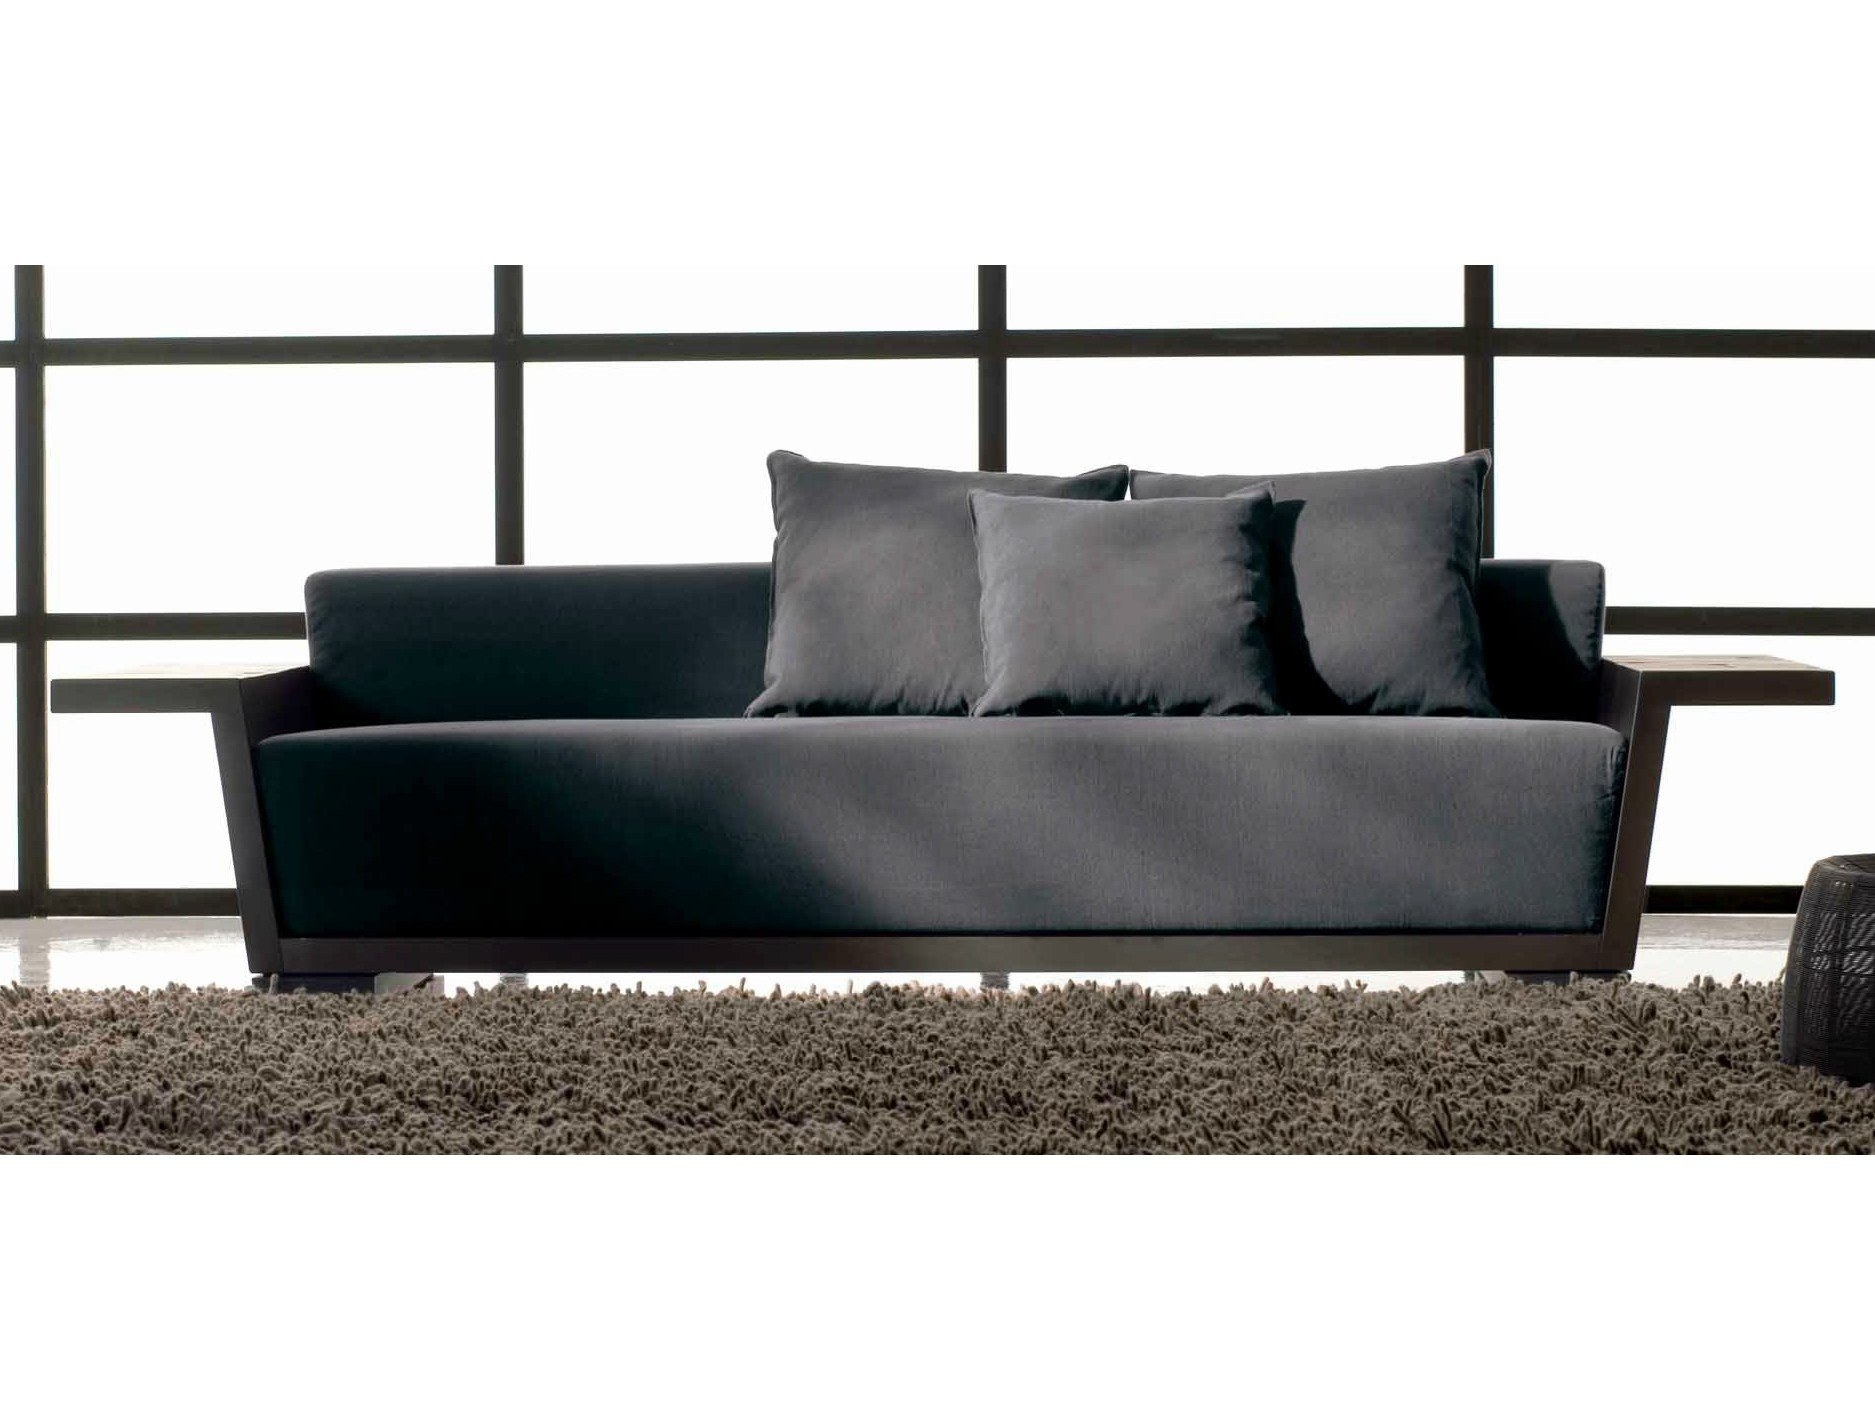 4 seater fabric sofa otto 109 otto collection by gervasoni design paola navone. Black Bedroom Furniture Sets. Home Design Ideas